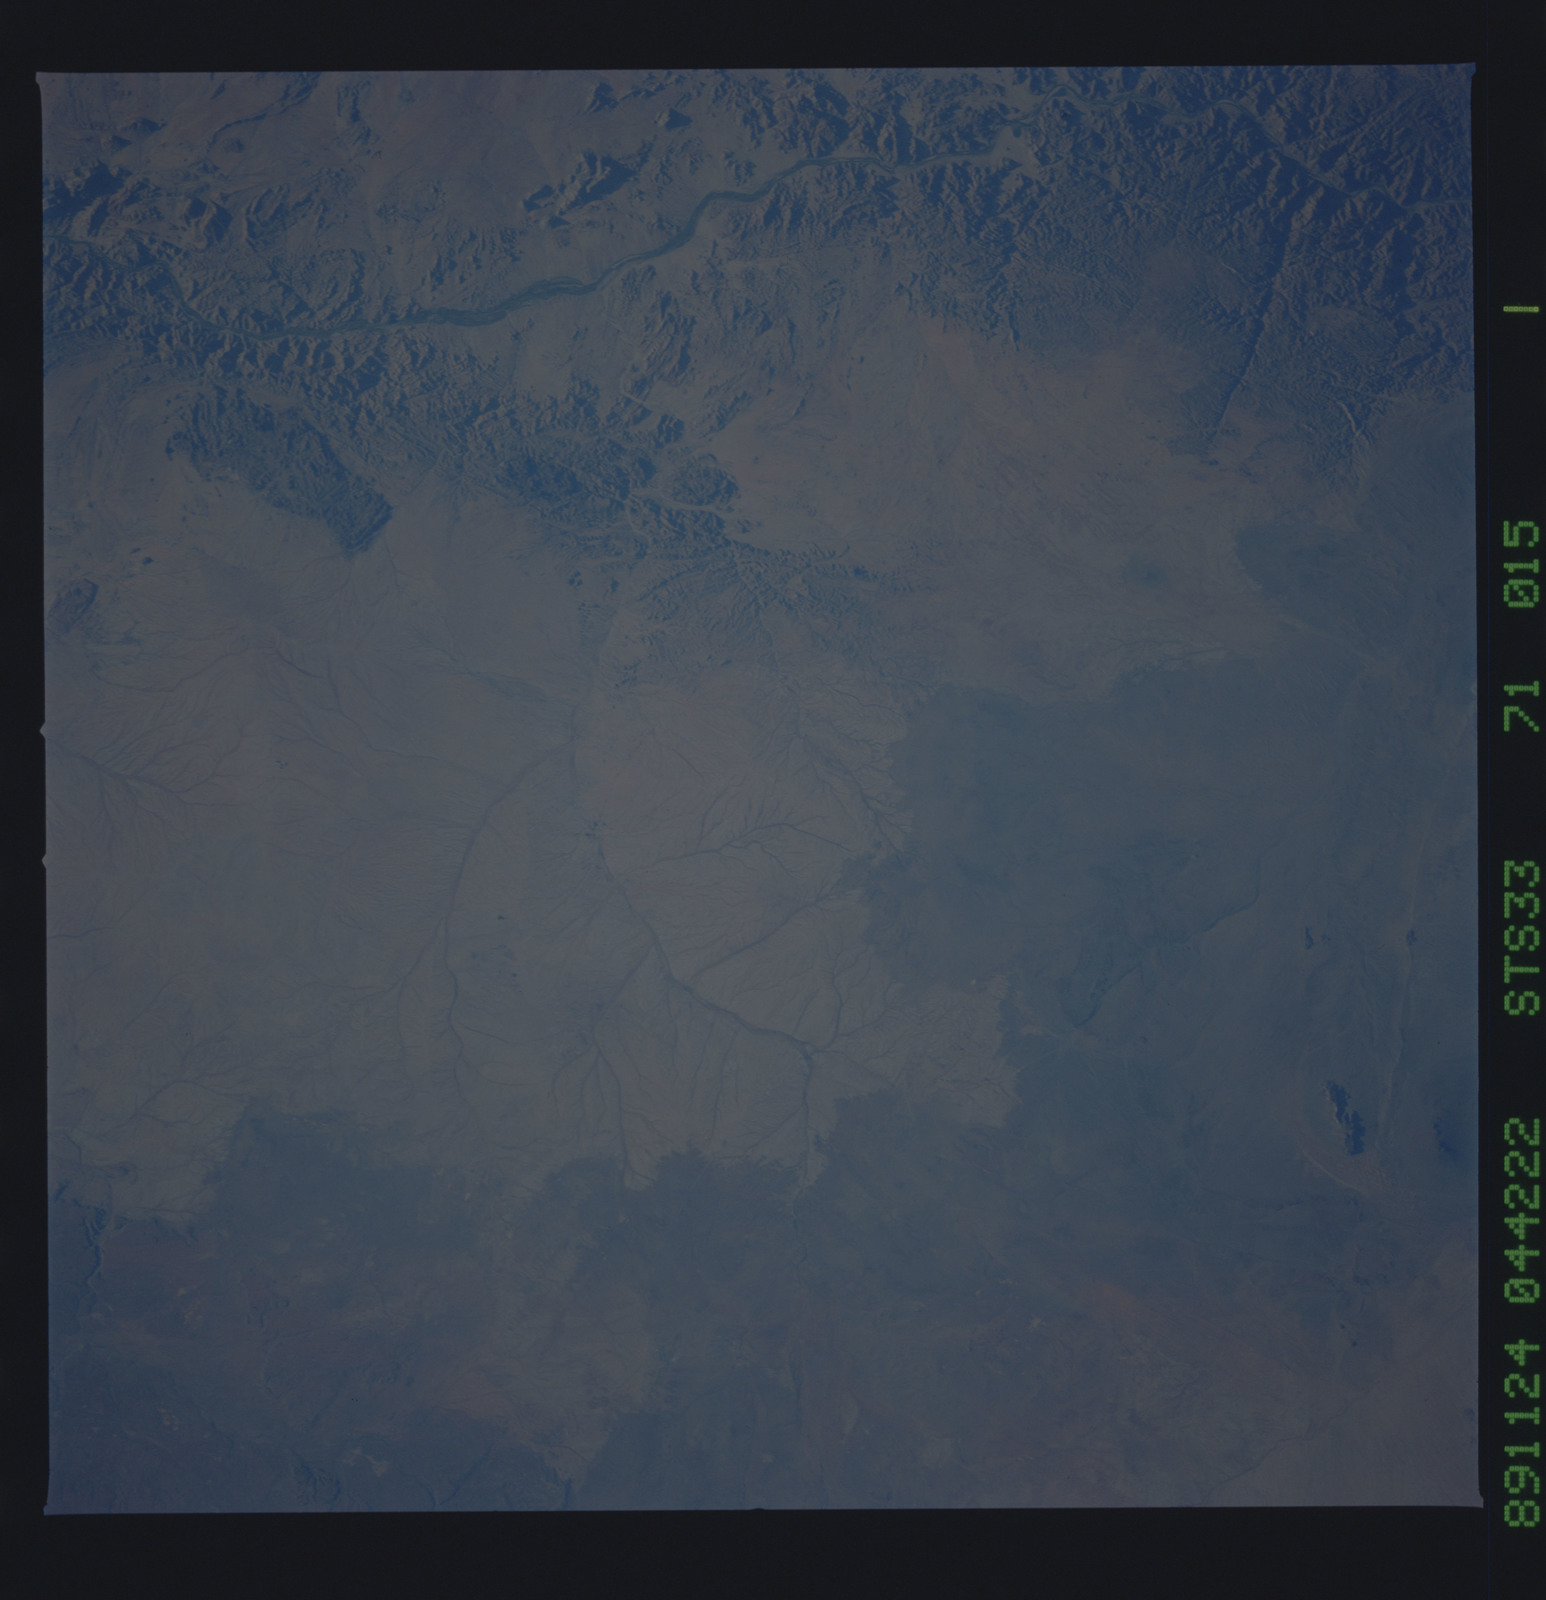 S33-71-015 - STS-033 - STS-33 earth observations